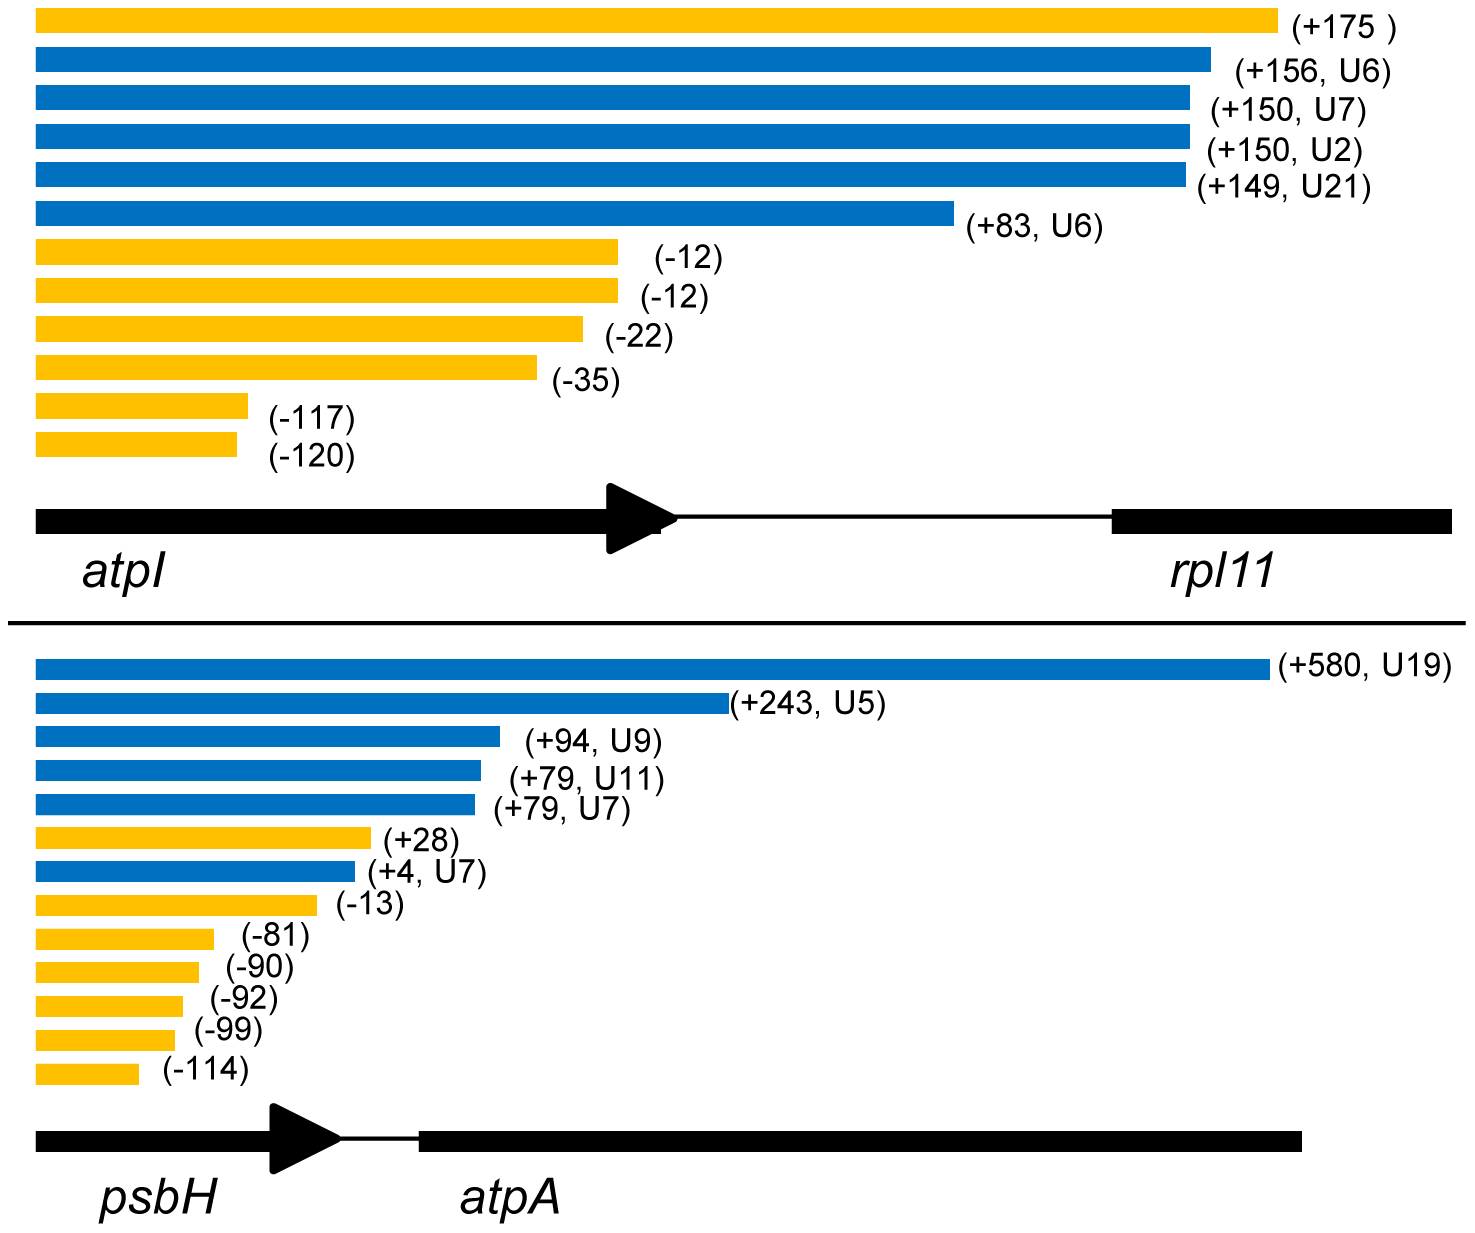 3′ end positions of <i>atpI</i> and <i>psbH</i> circular RT-PCR sequences.